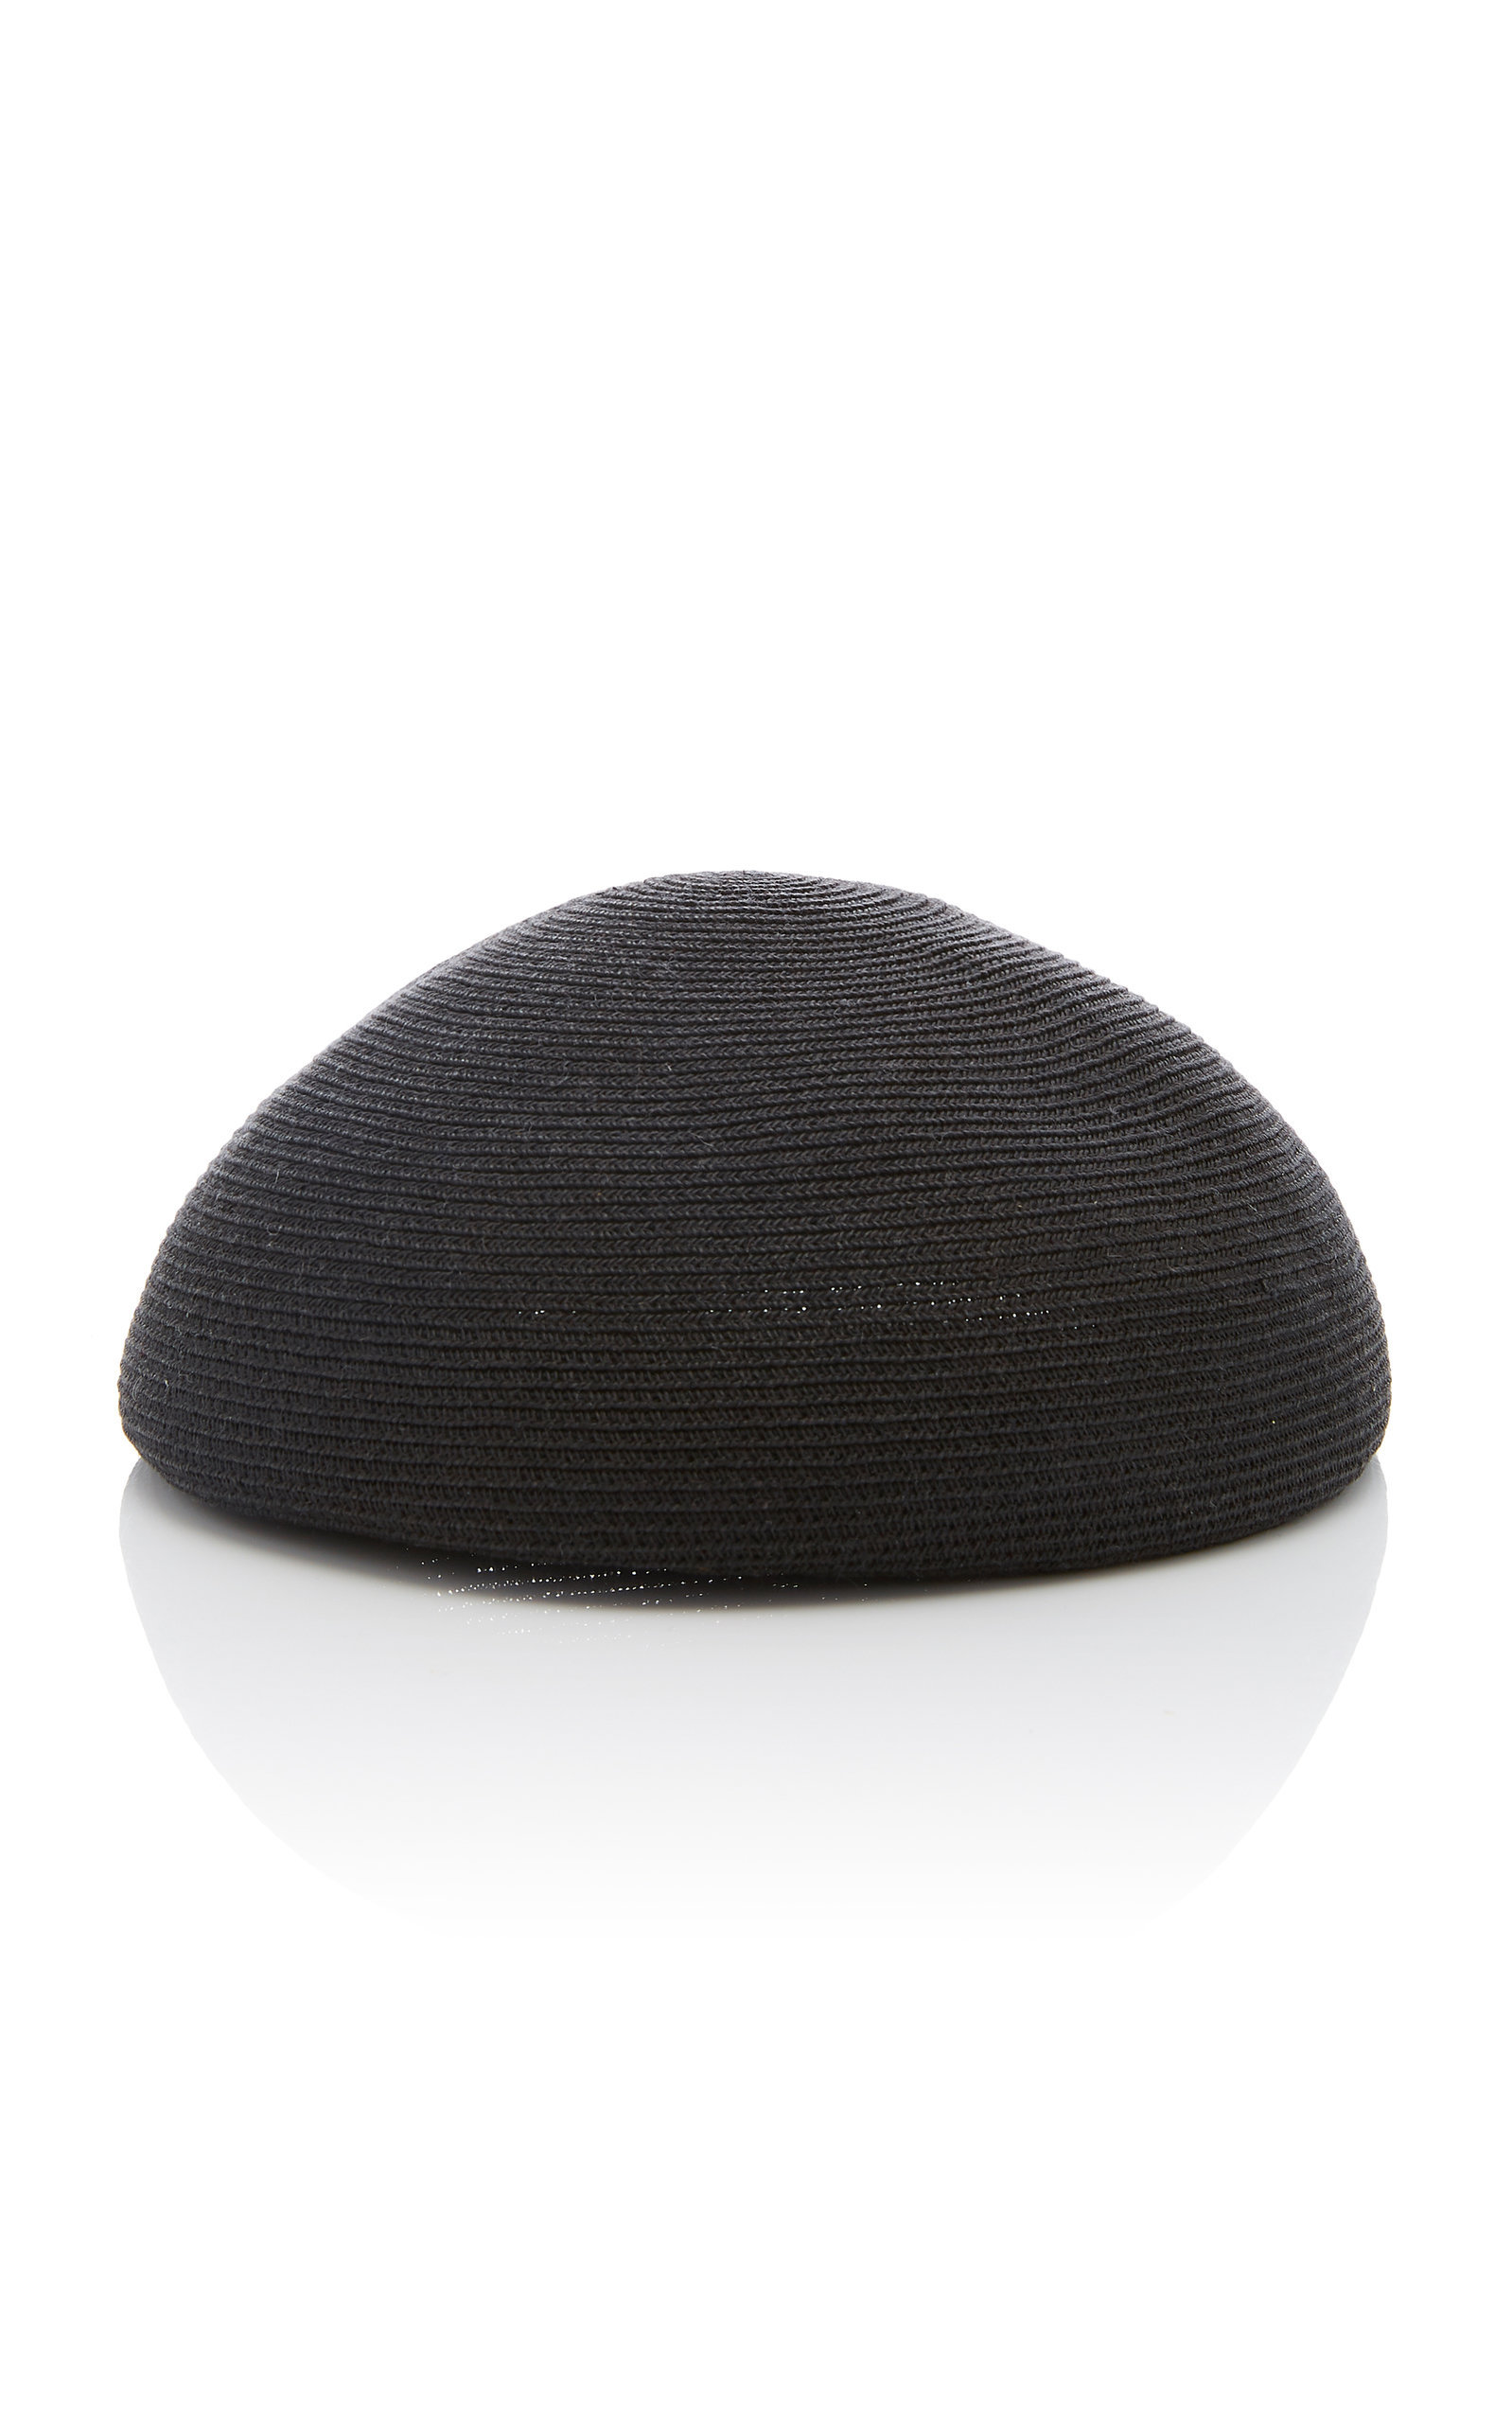 70278b24a1e35 Shop Yestadt Millinery Zina Leather-Trimmed Straw Beret In Black